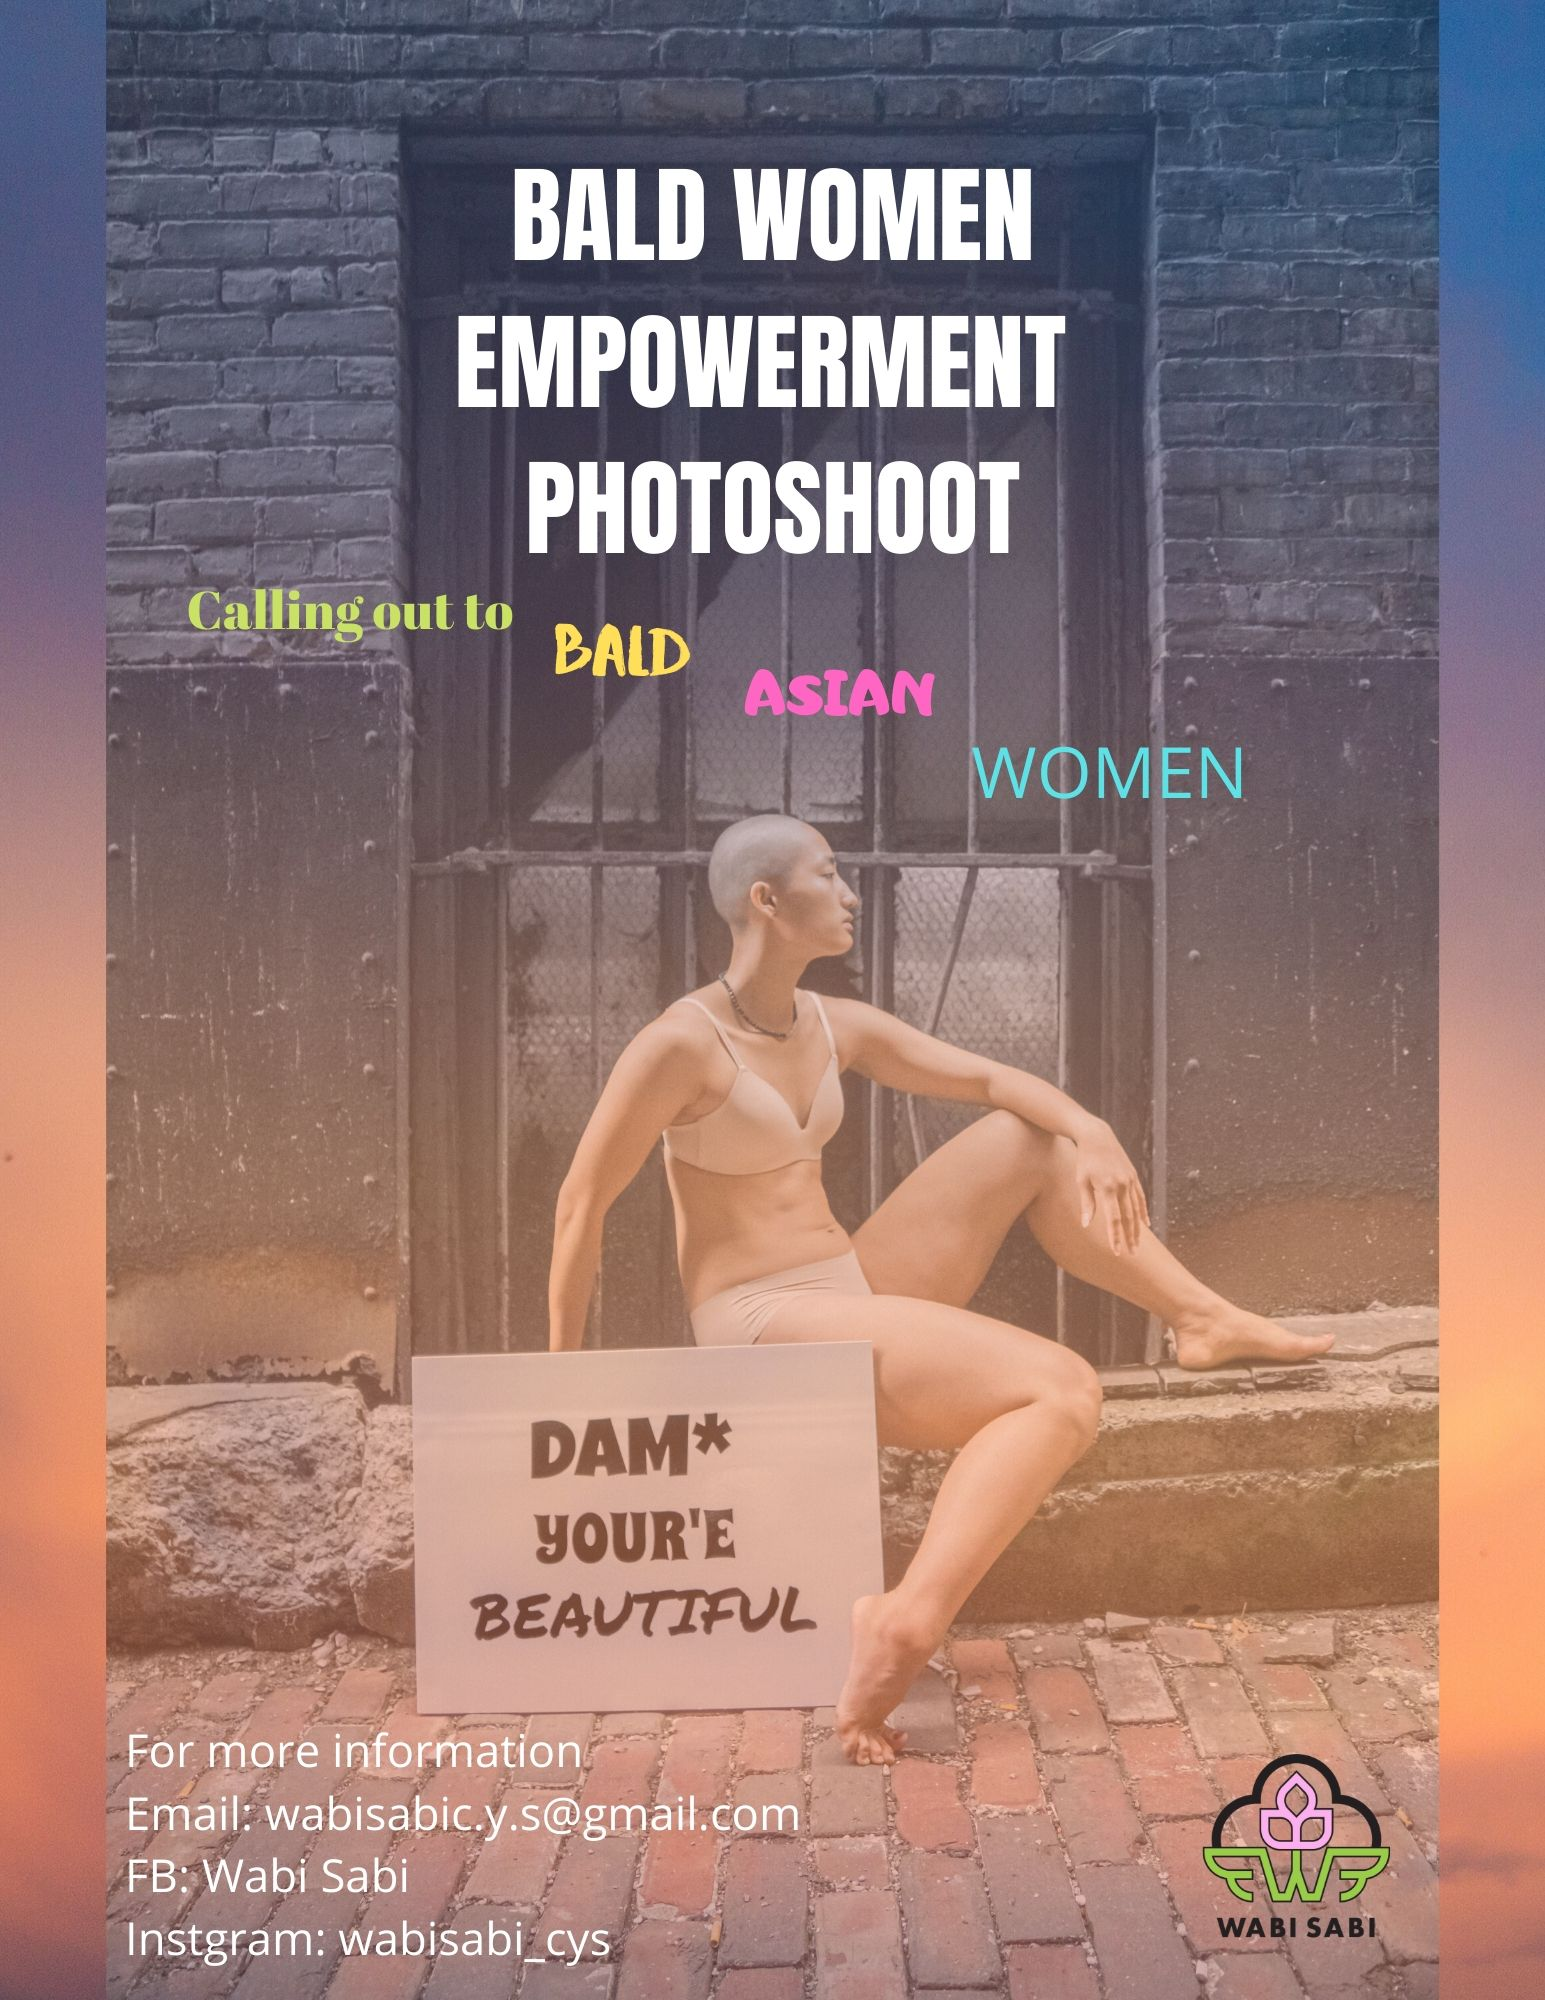 DAM_ YOU'RE BEAUTIFUL EMPOWERMENT PHOTOSHOOT- Calling for Bald Asian Women! Or Women wanting_planning to go bald.jpg